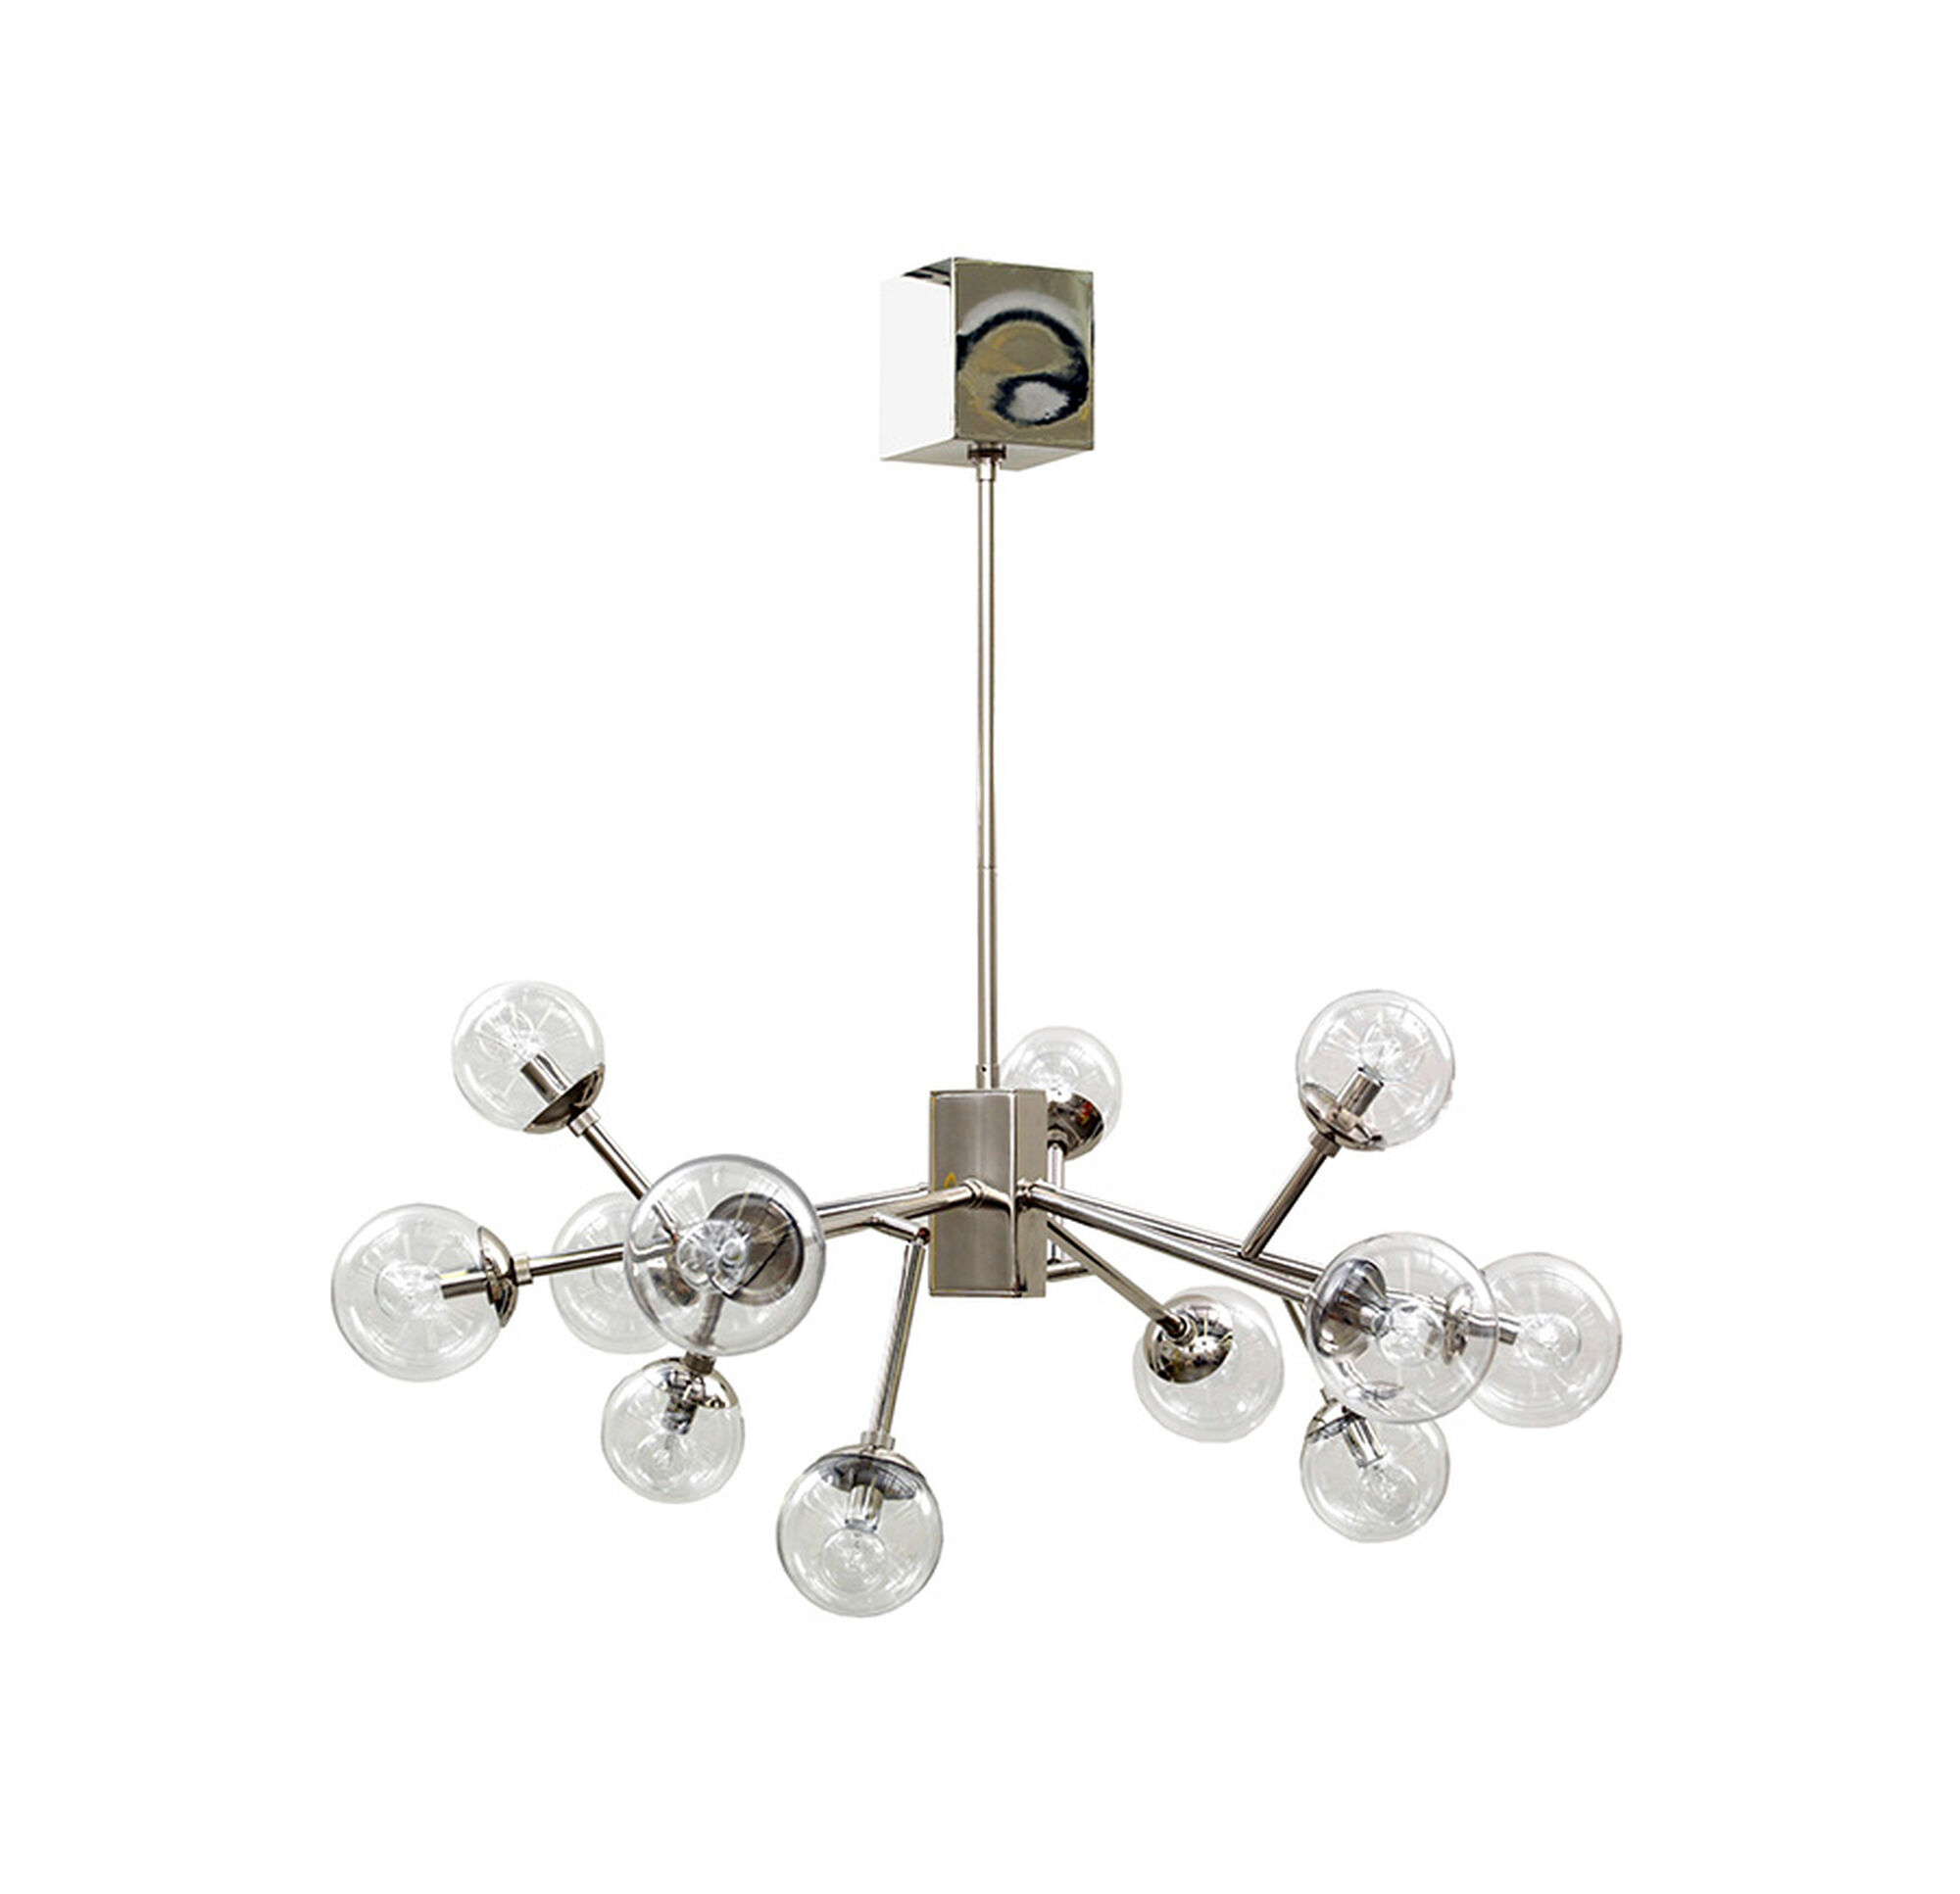 bling large nickel by ra abbey index chandelier robert